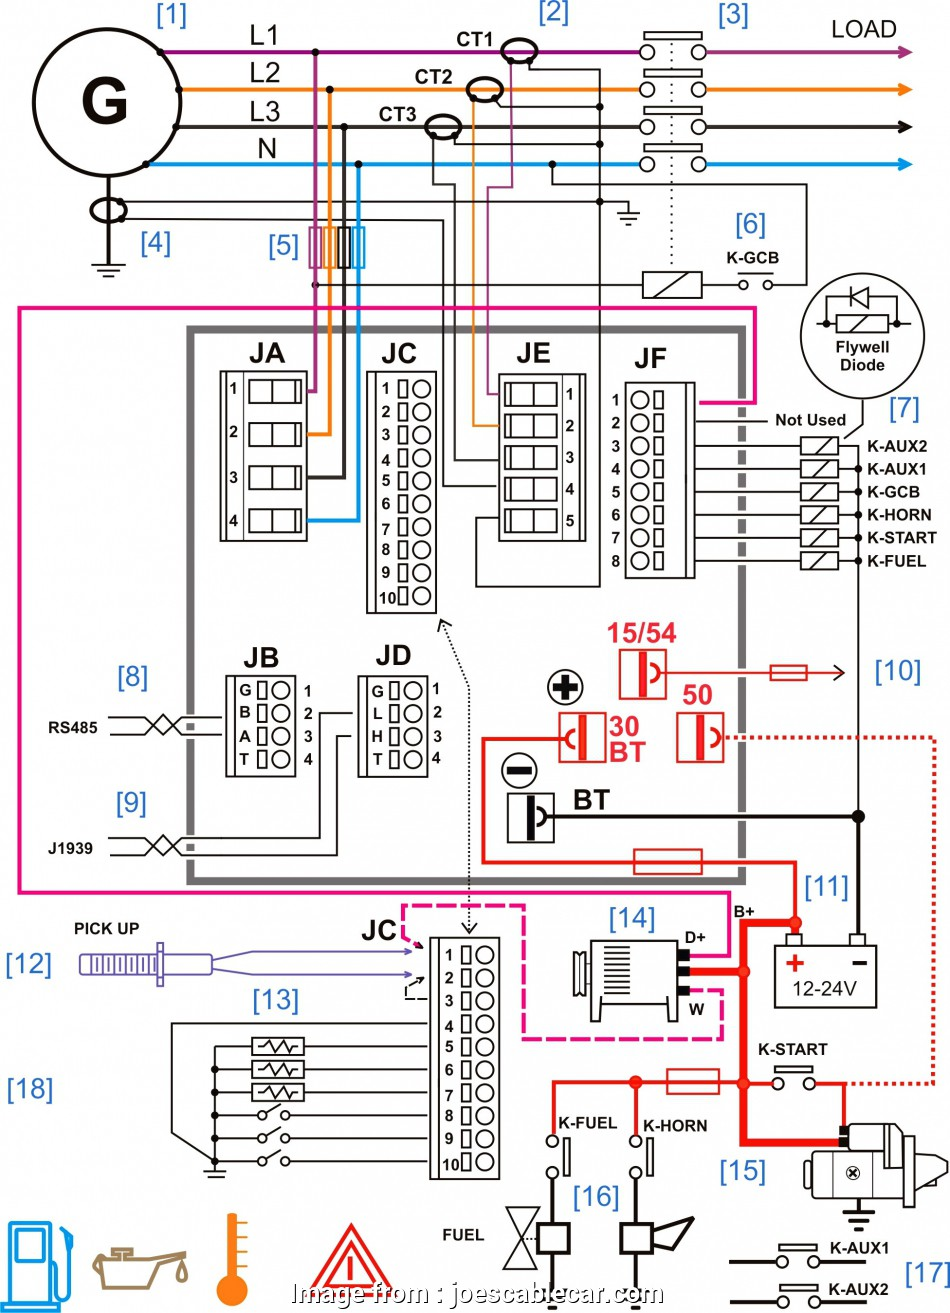 electrical control panel wiring diagram pdf Plc Wiring Diagram Symbols, 2017 Electrical Control Panel Wiring Diagram Pdf 19 Fantastic Electrical Control Panel Wiring Diagram Pdf Galleries